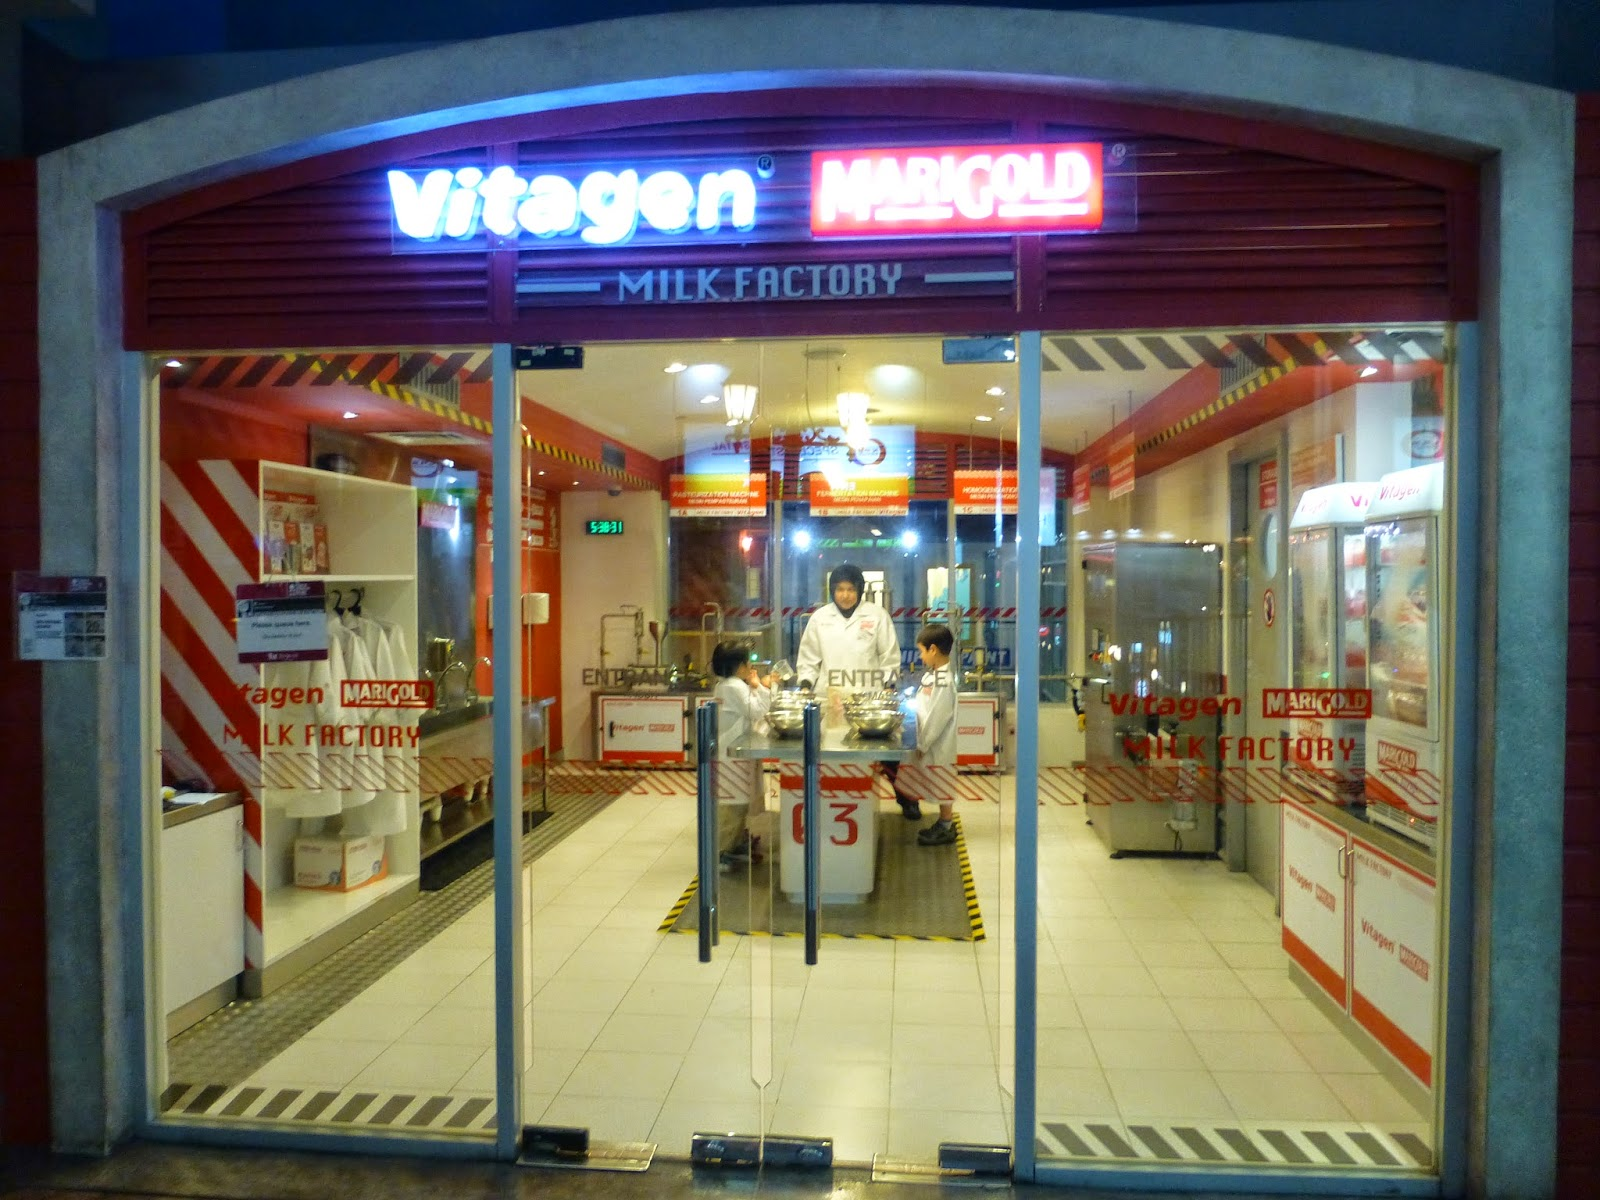 Family Fecs Kidzania Edu Theme Park Suplement Kidzos To Drink After Completion You Are Also Paid At This Station Our Little Loved It So Much The Vitagen He Did Activity Twice